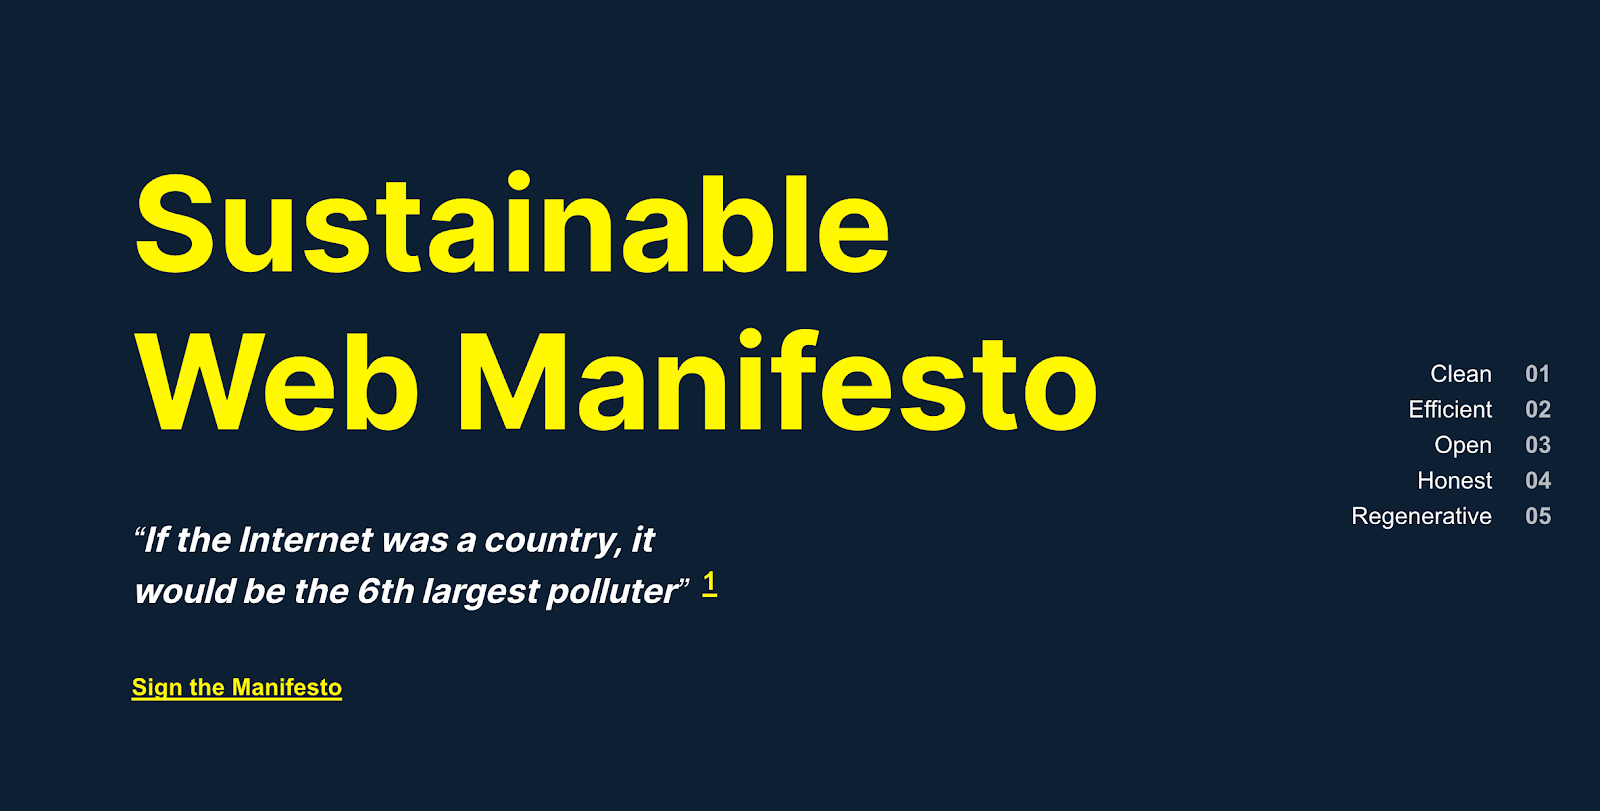 Screengrab of the Sustainable Web Manifesto front page.